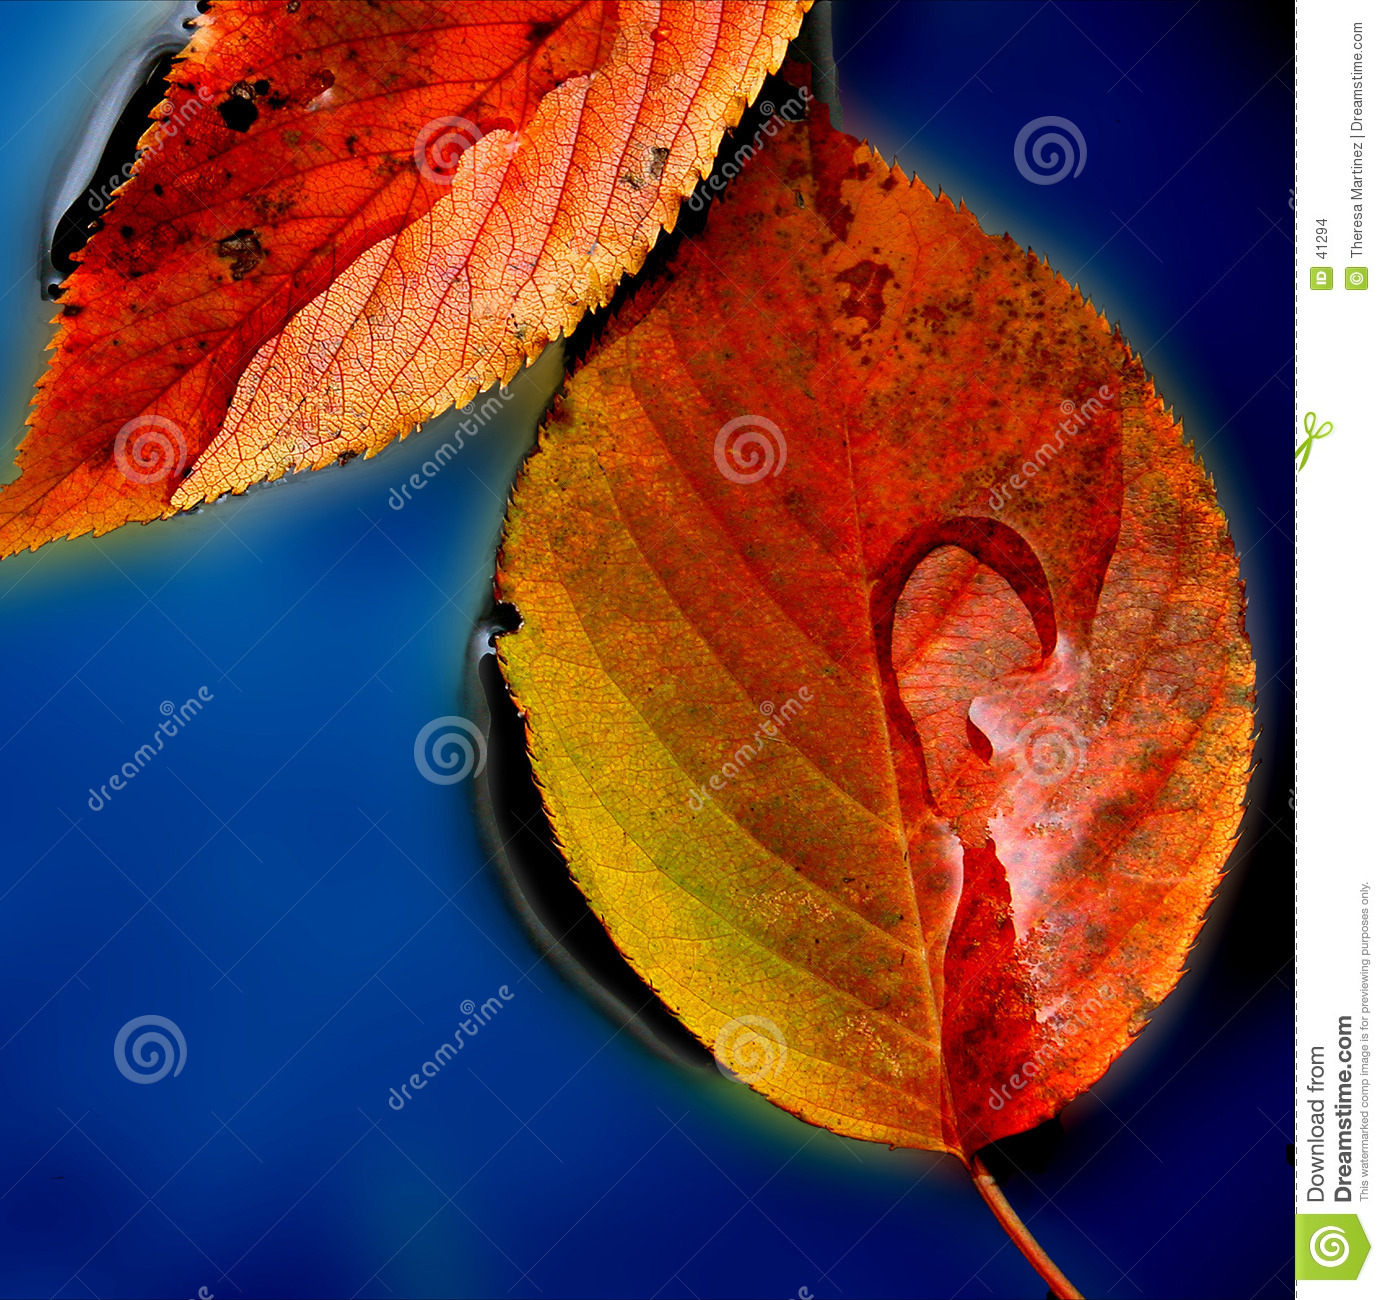 Puddle of Leaves